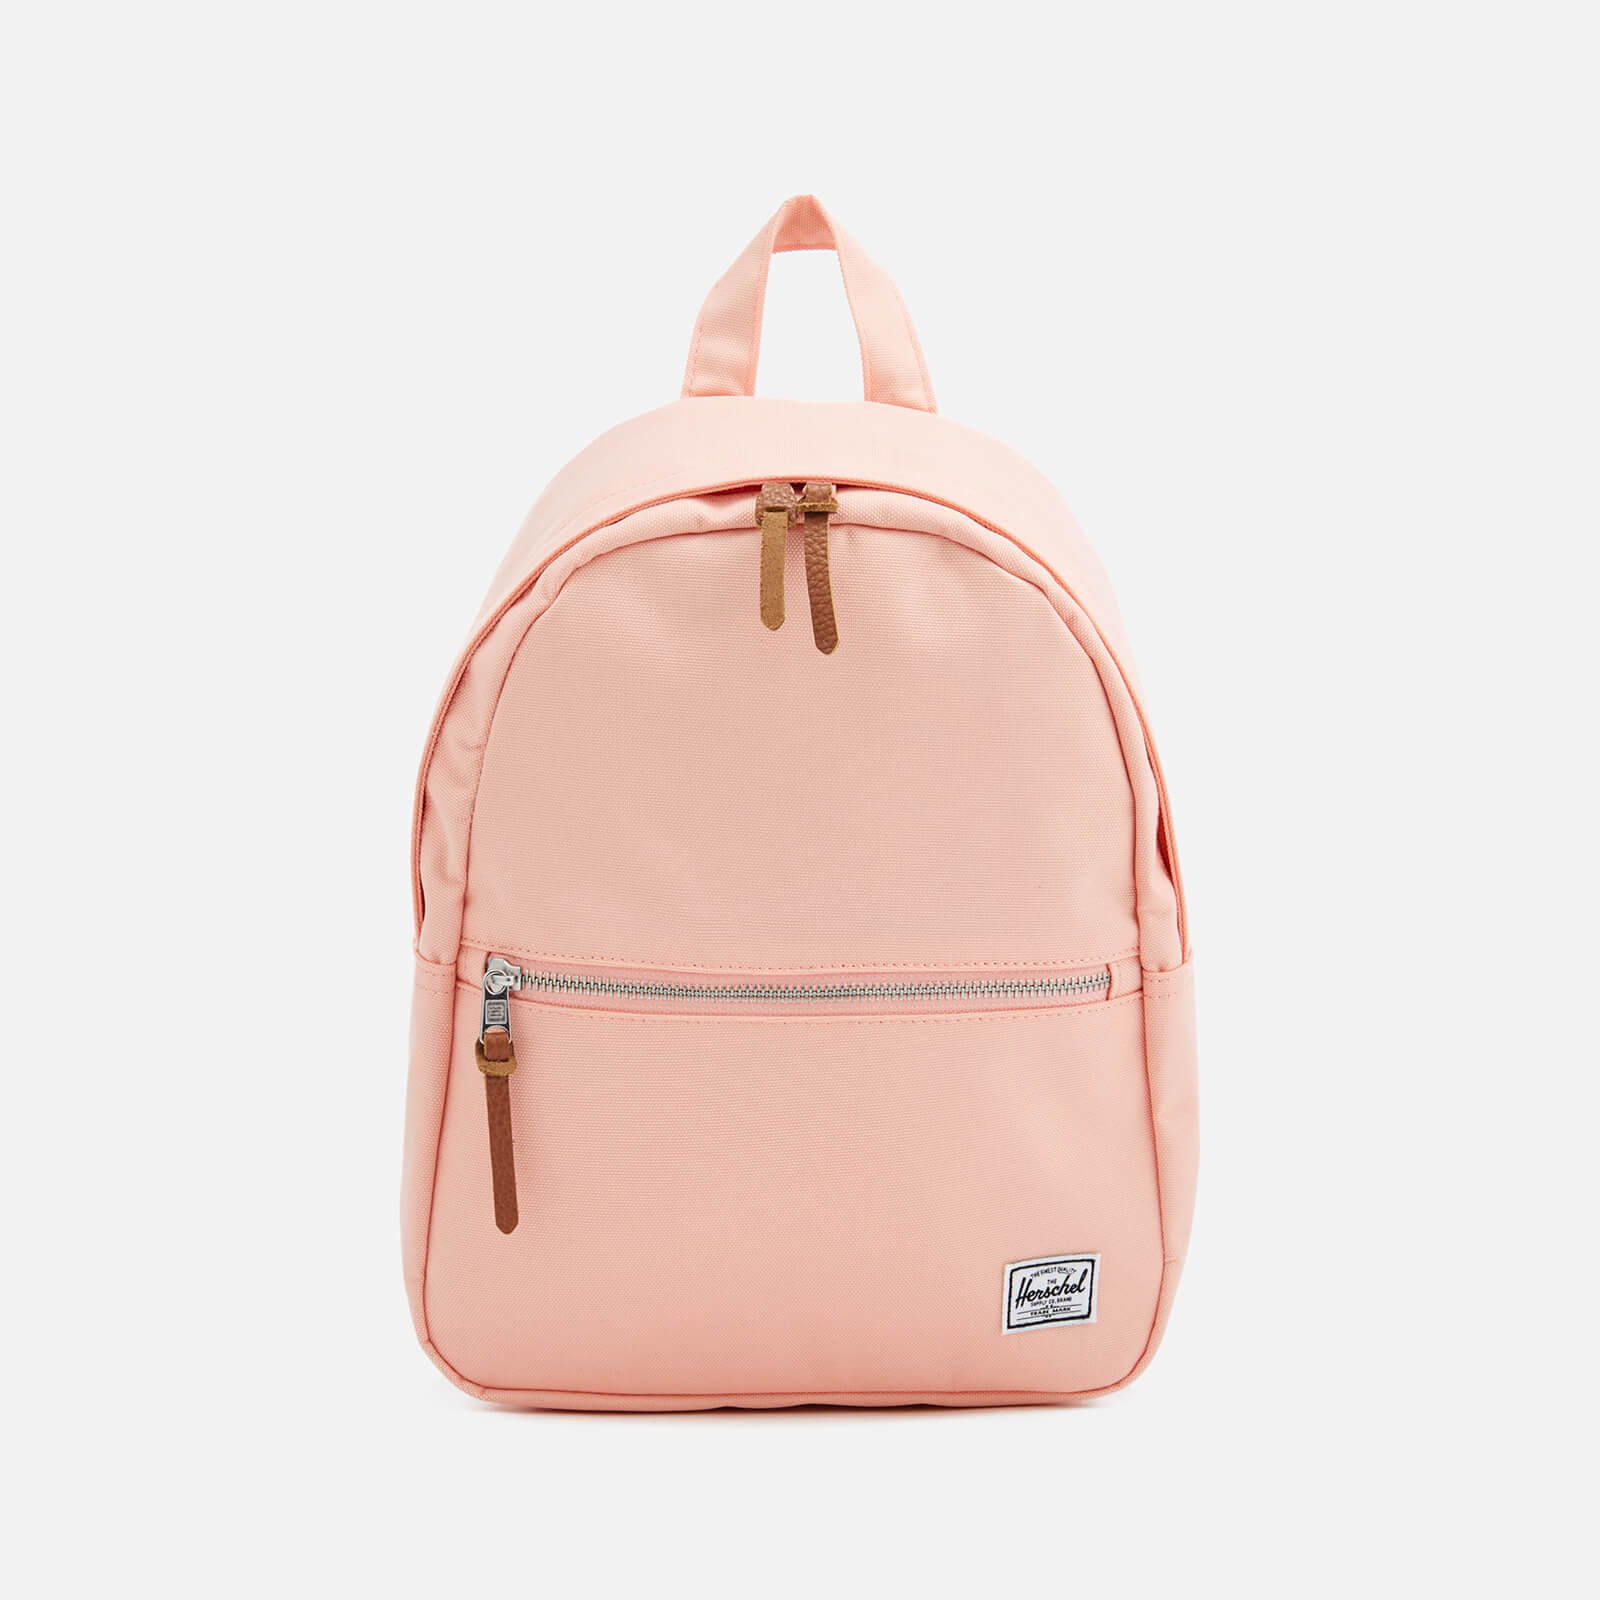 c9ff8b68a4e52 Herschel Supply Co. Women s Town Backpack - Apricot Blush Womens  Accessories